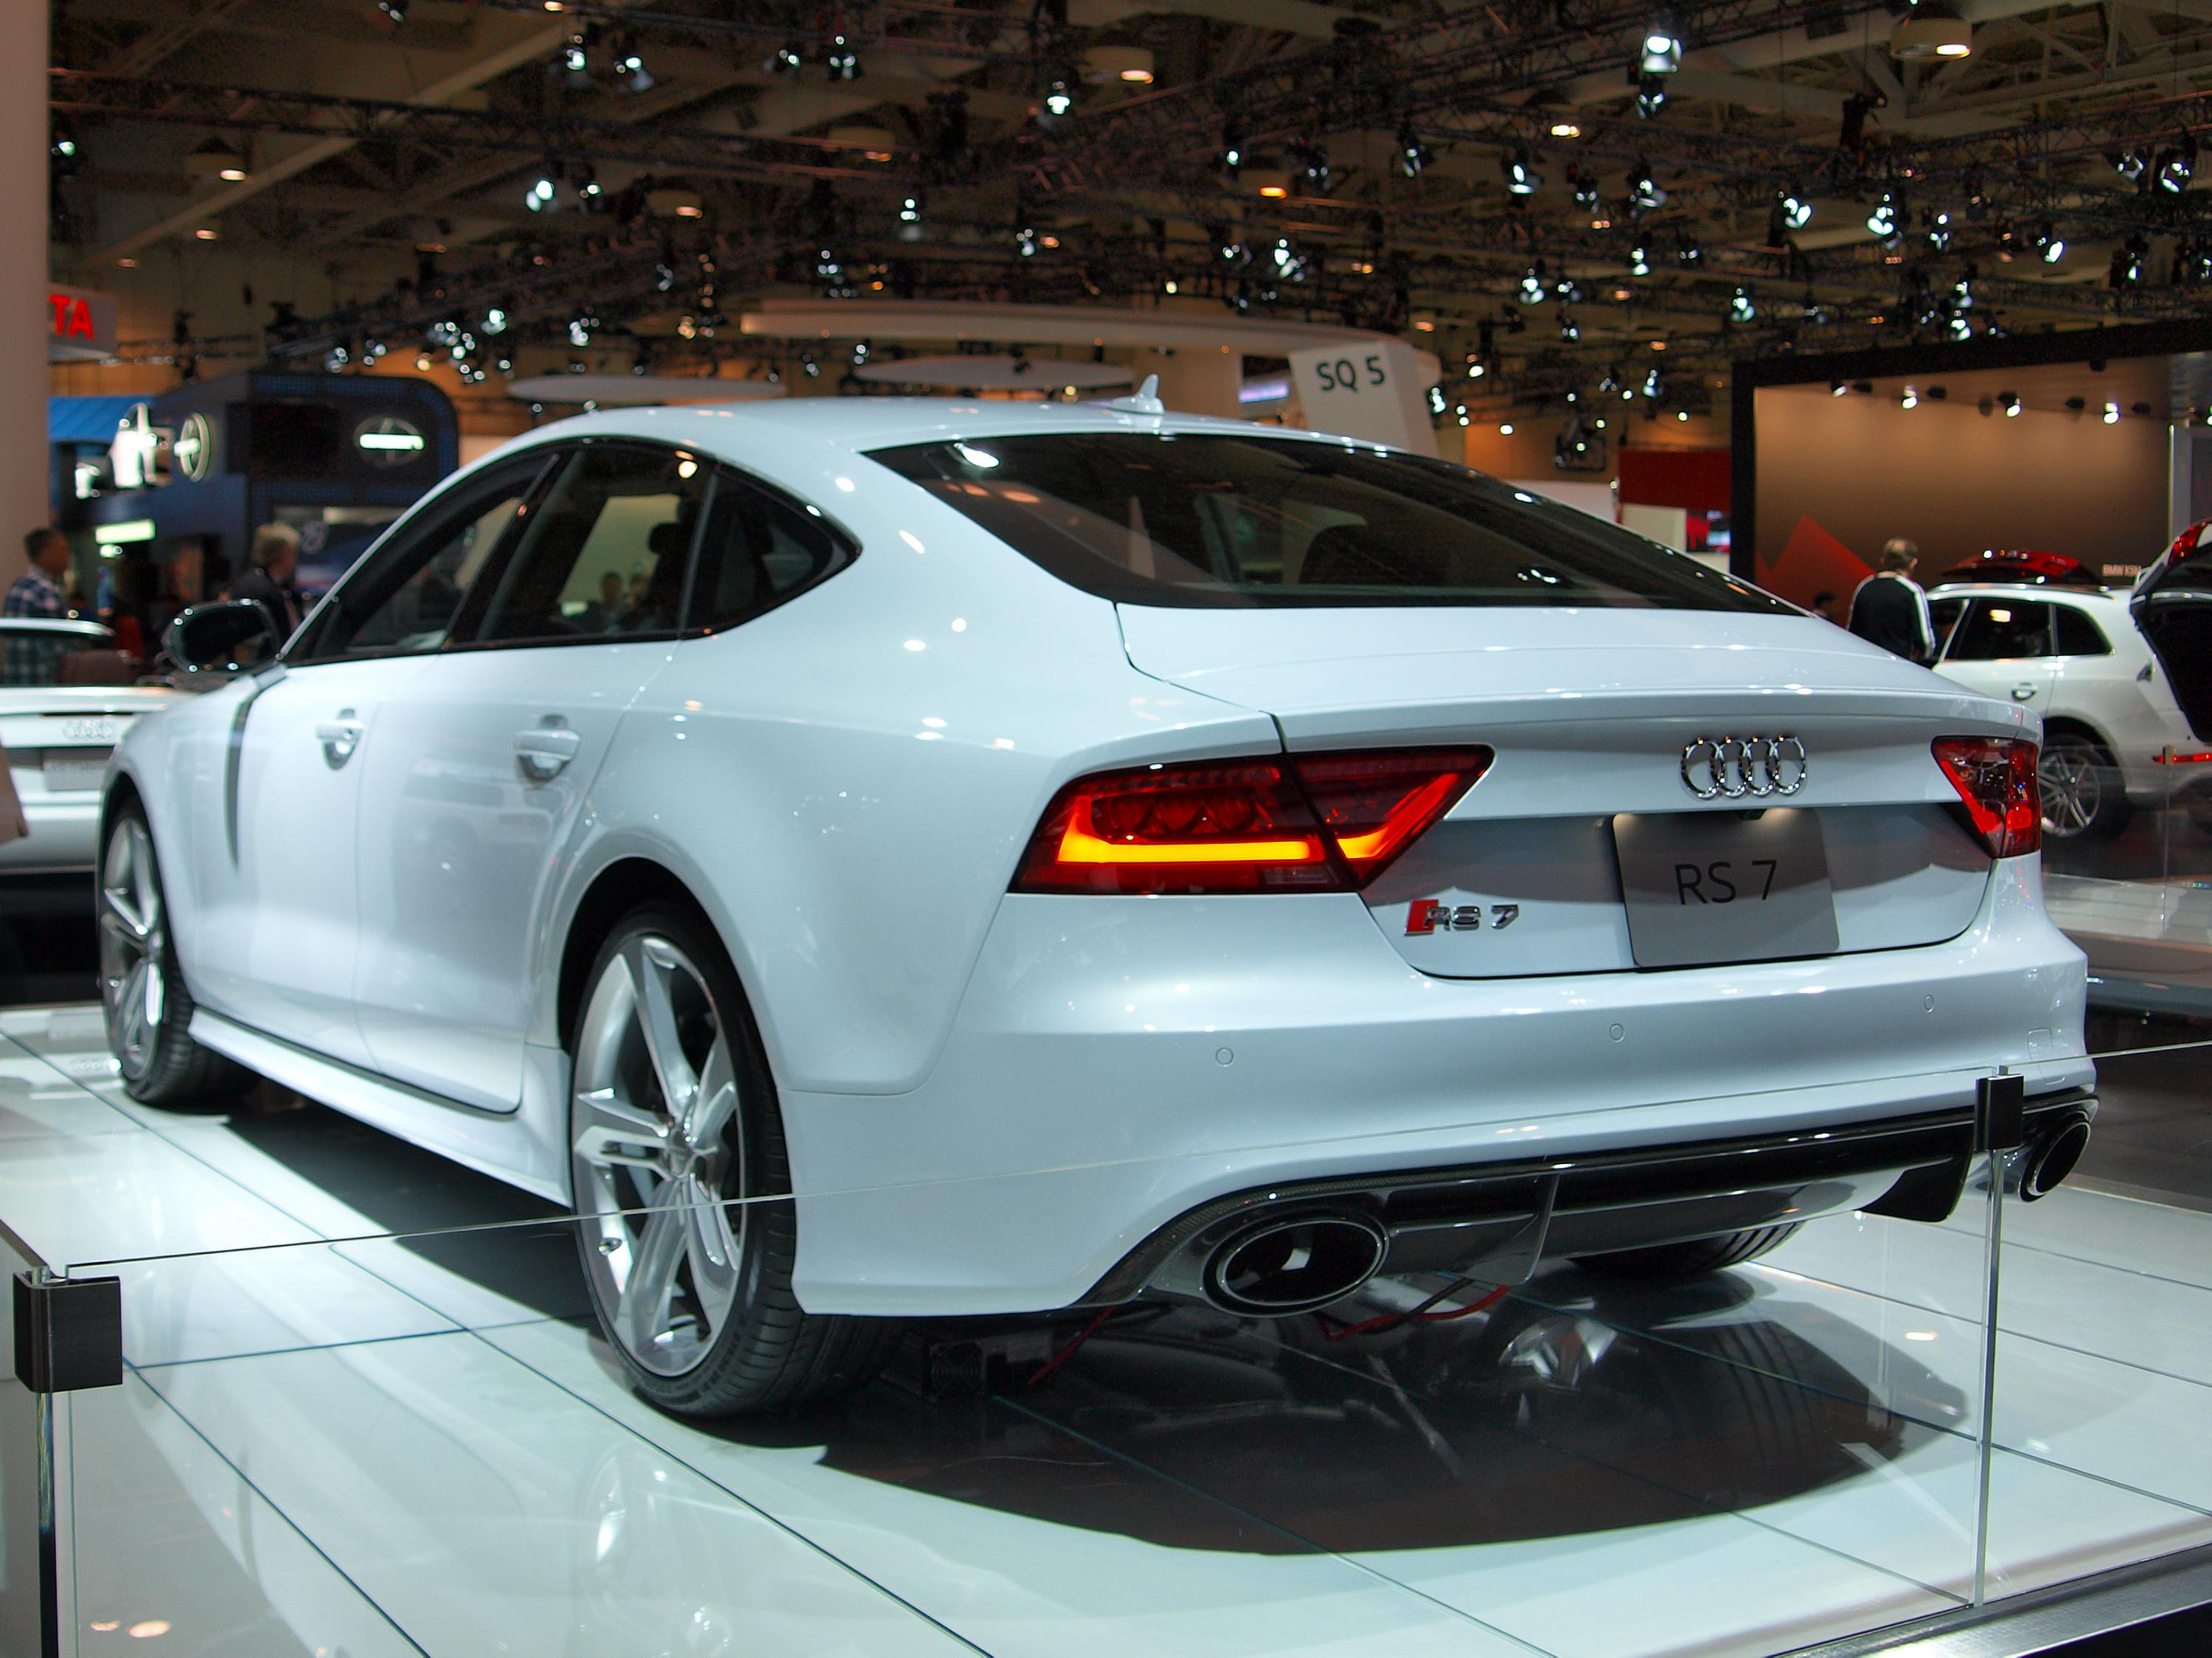 File:CIAS 2013 - Audi A7 RS7 (8513620015).jpg - Wikimedia Commons